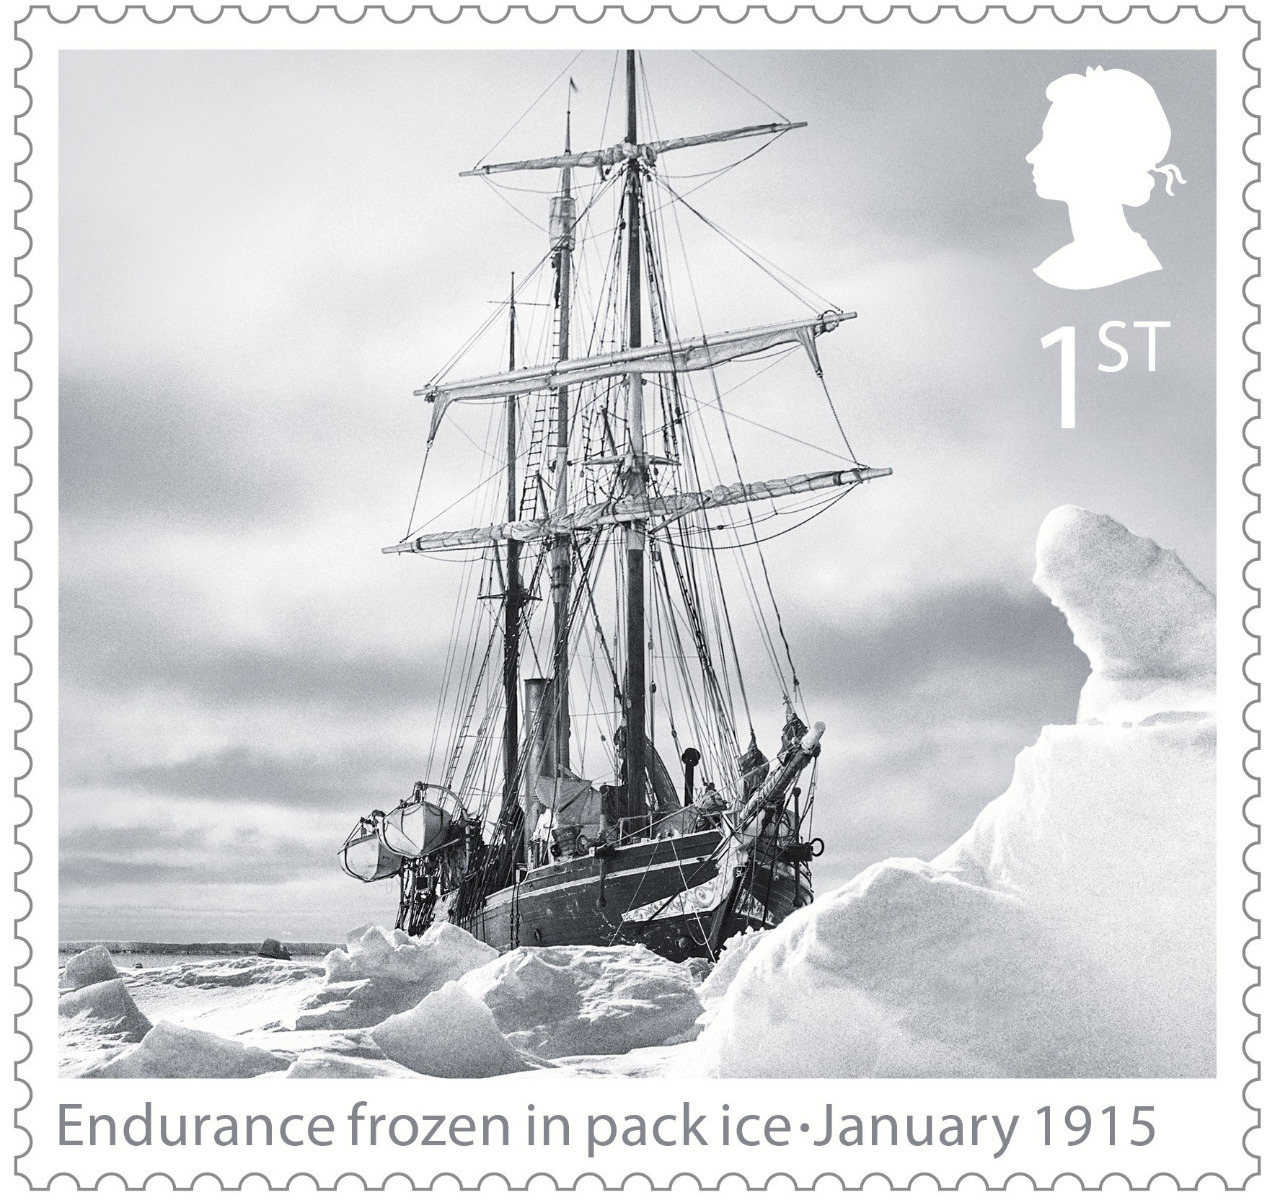 ENDURANCE COMMEMORATIVE STAMP - BESET IN ICE